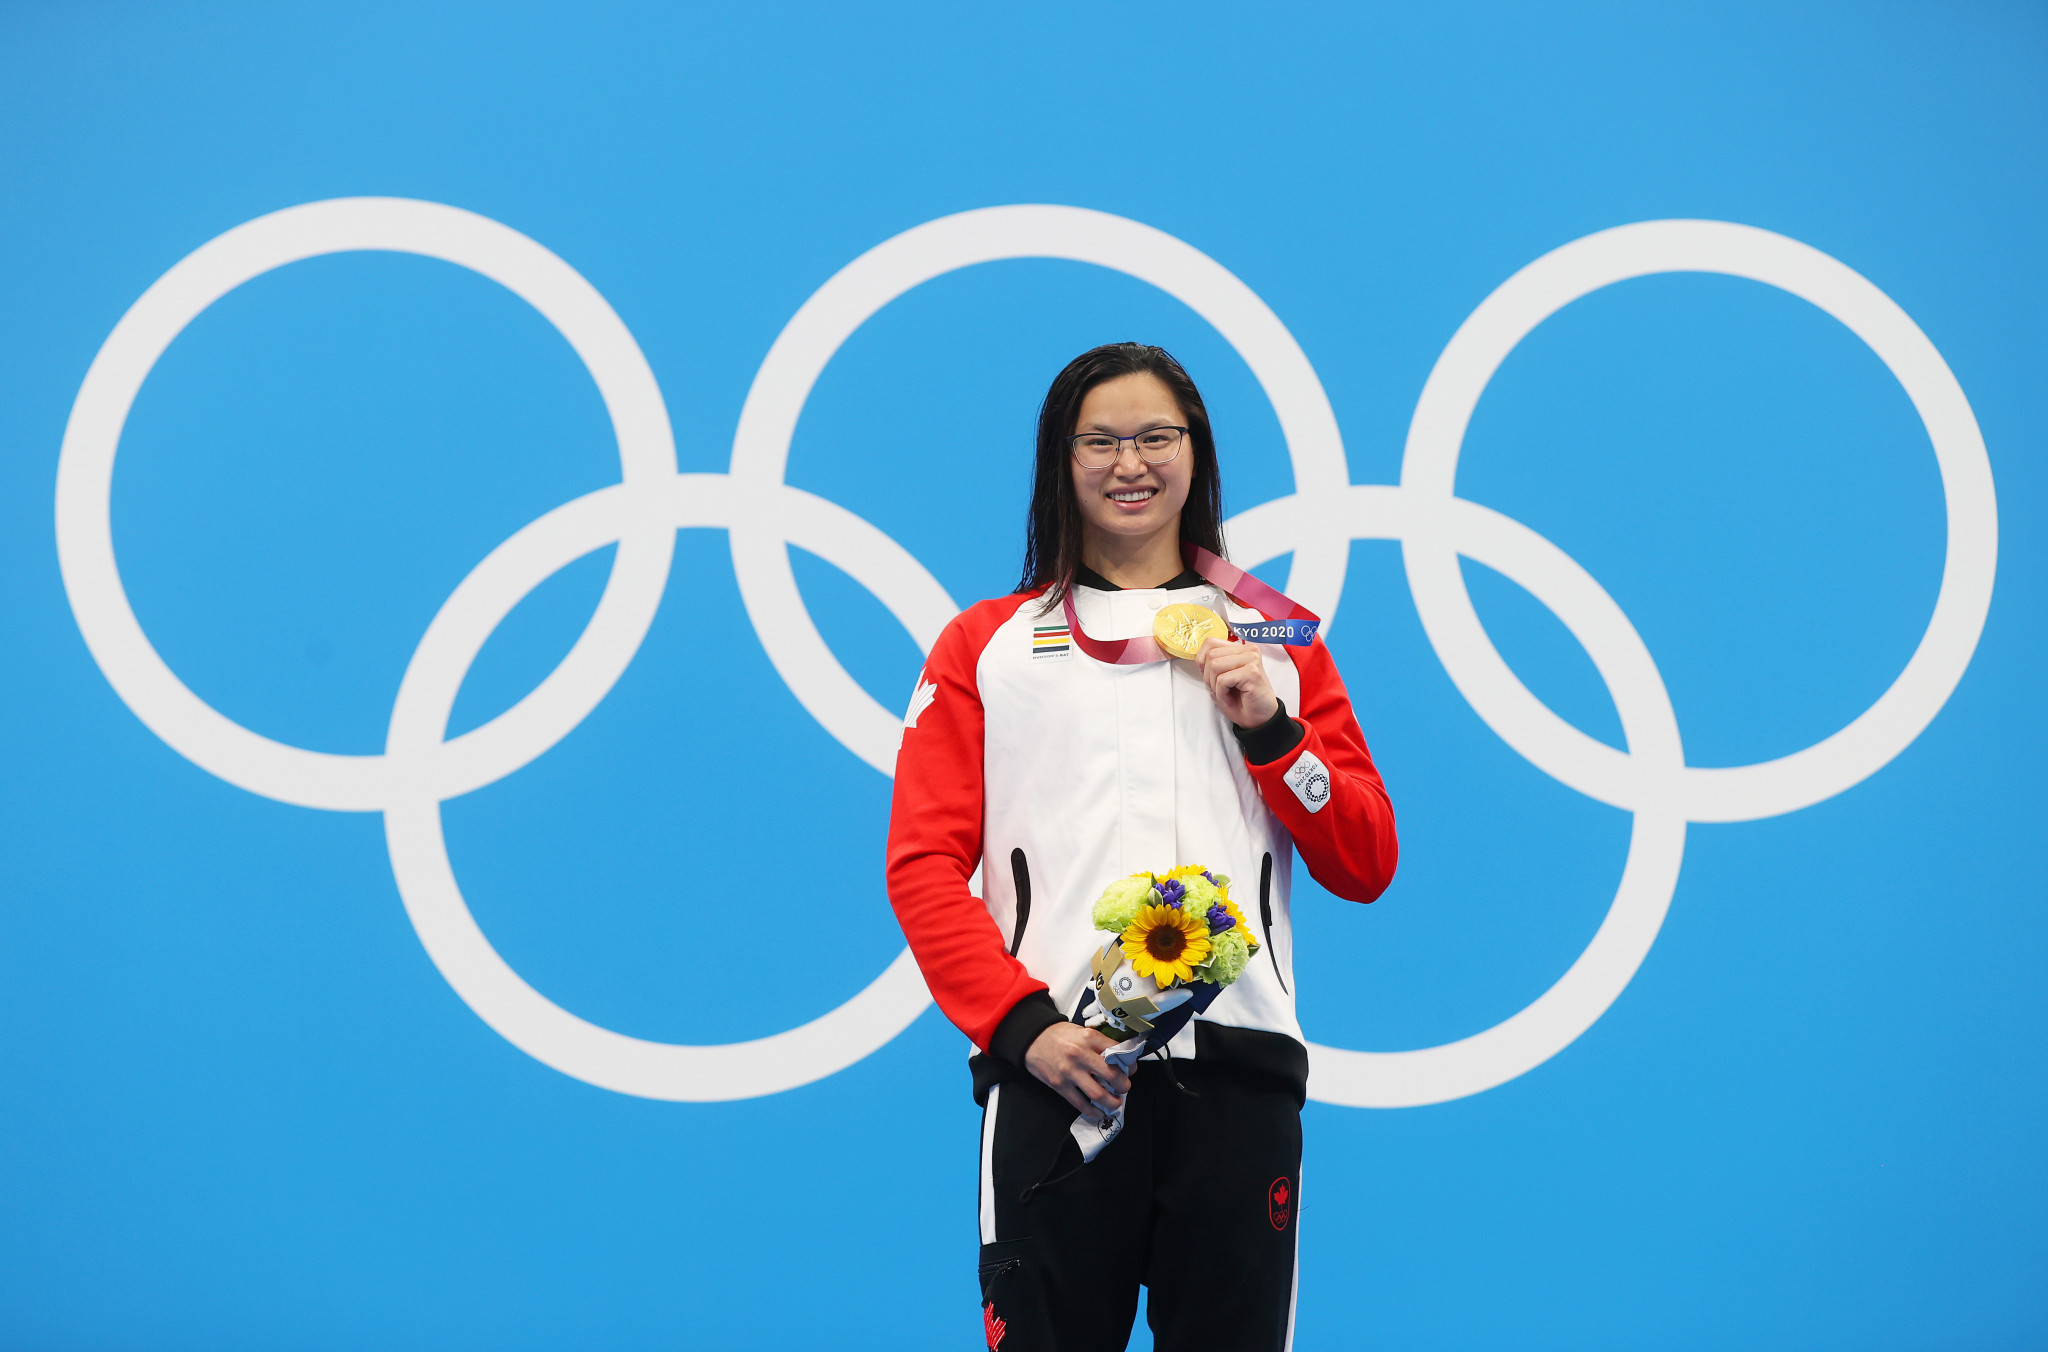 Canadian Margaret MacNeil won gold in the 100m butterfly at the Tokyo 2020 Olympic and Paralympic Games ©Getty Images